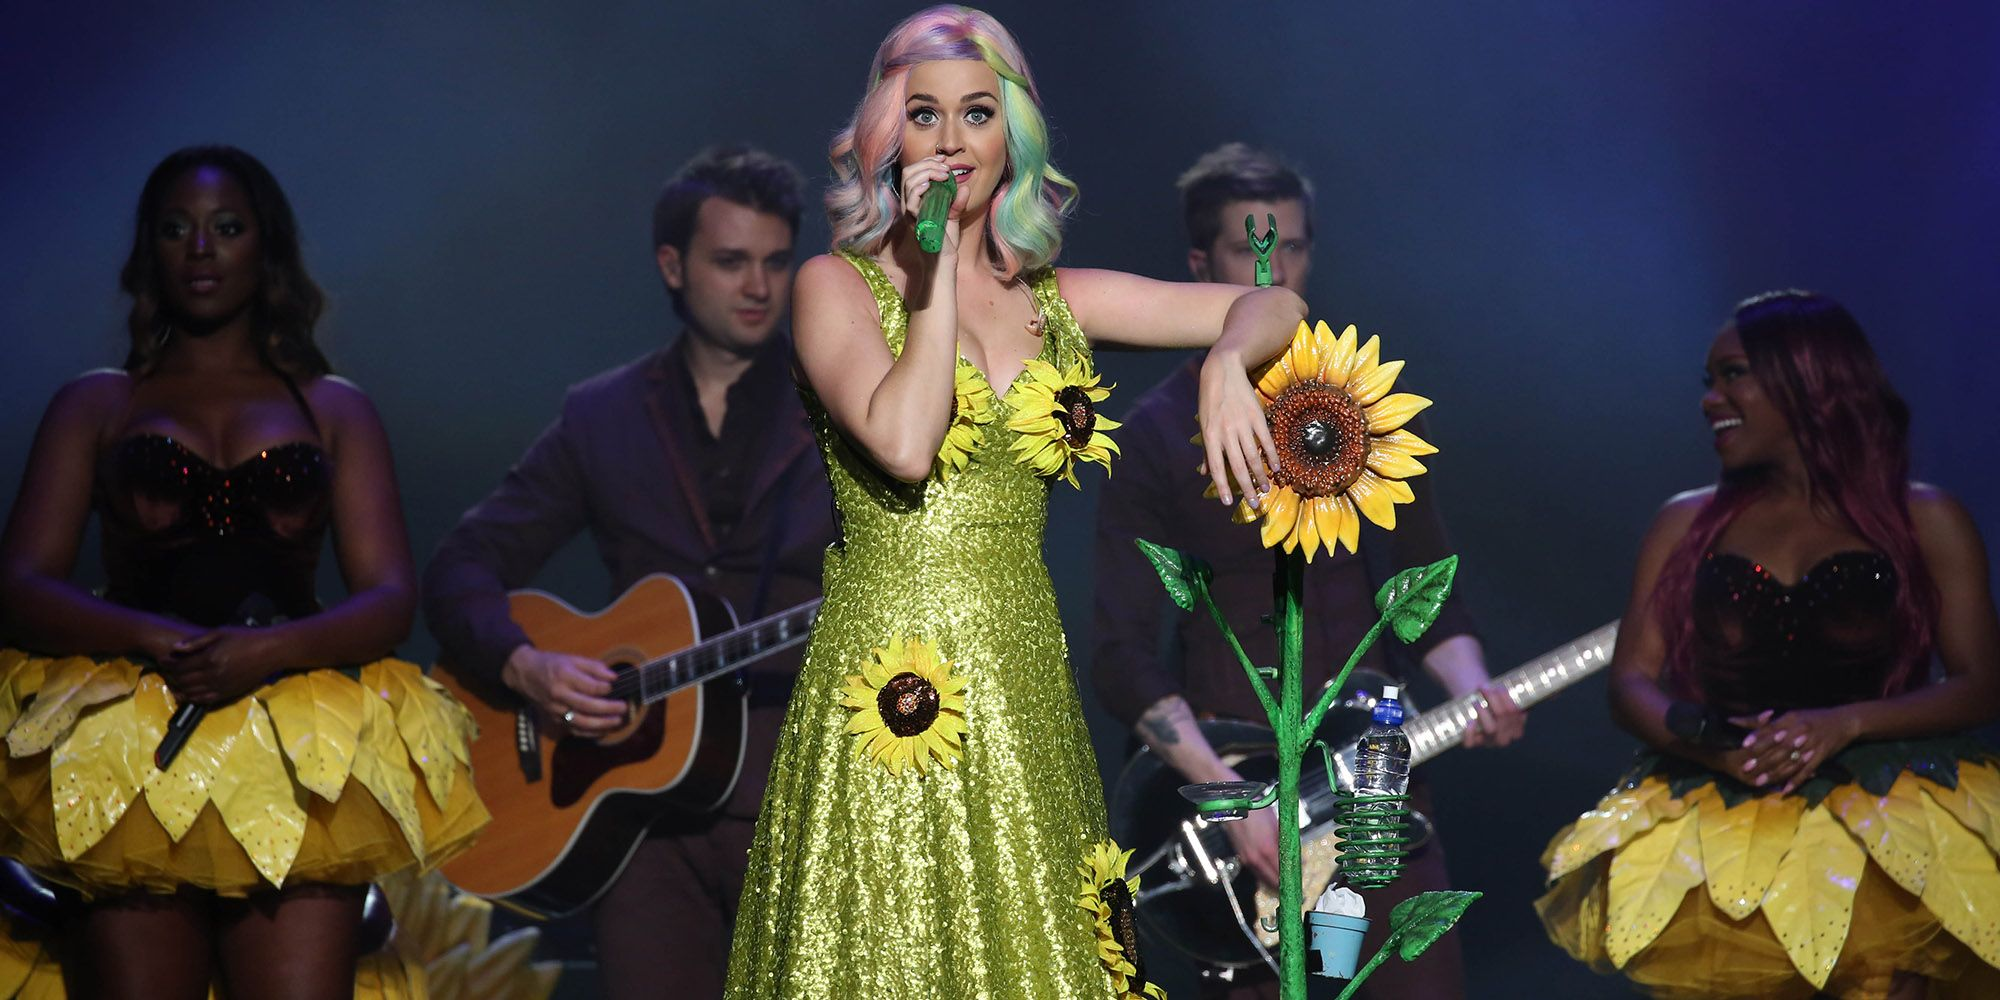 Katy Perry Reportedly Banned from China for Sunflower Dress - Katy ...